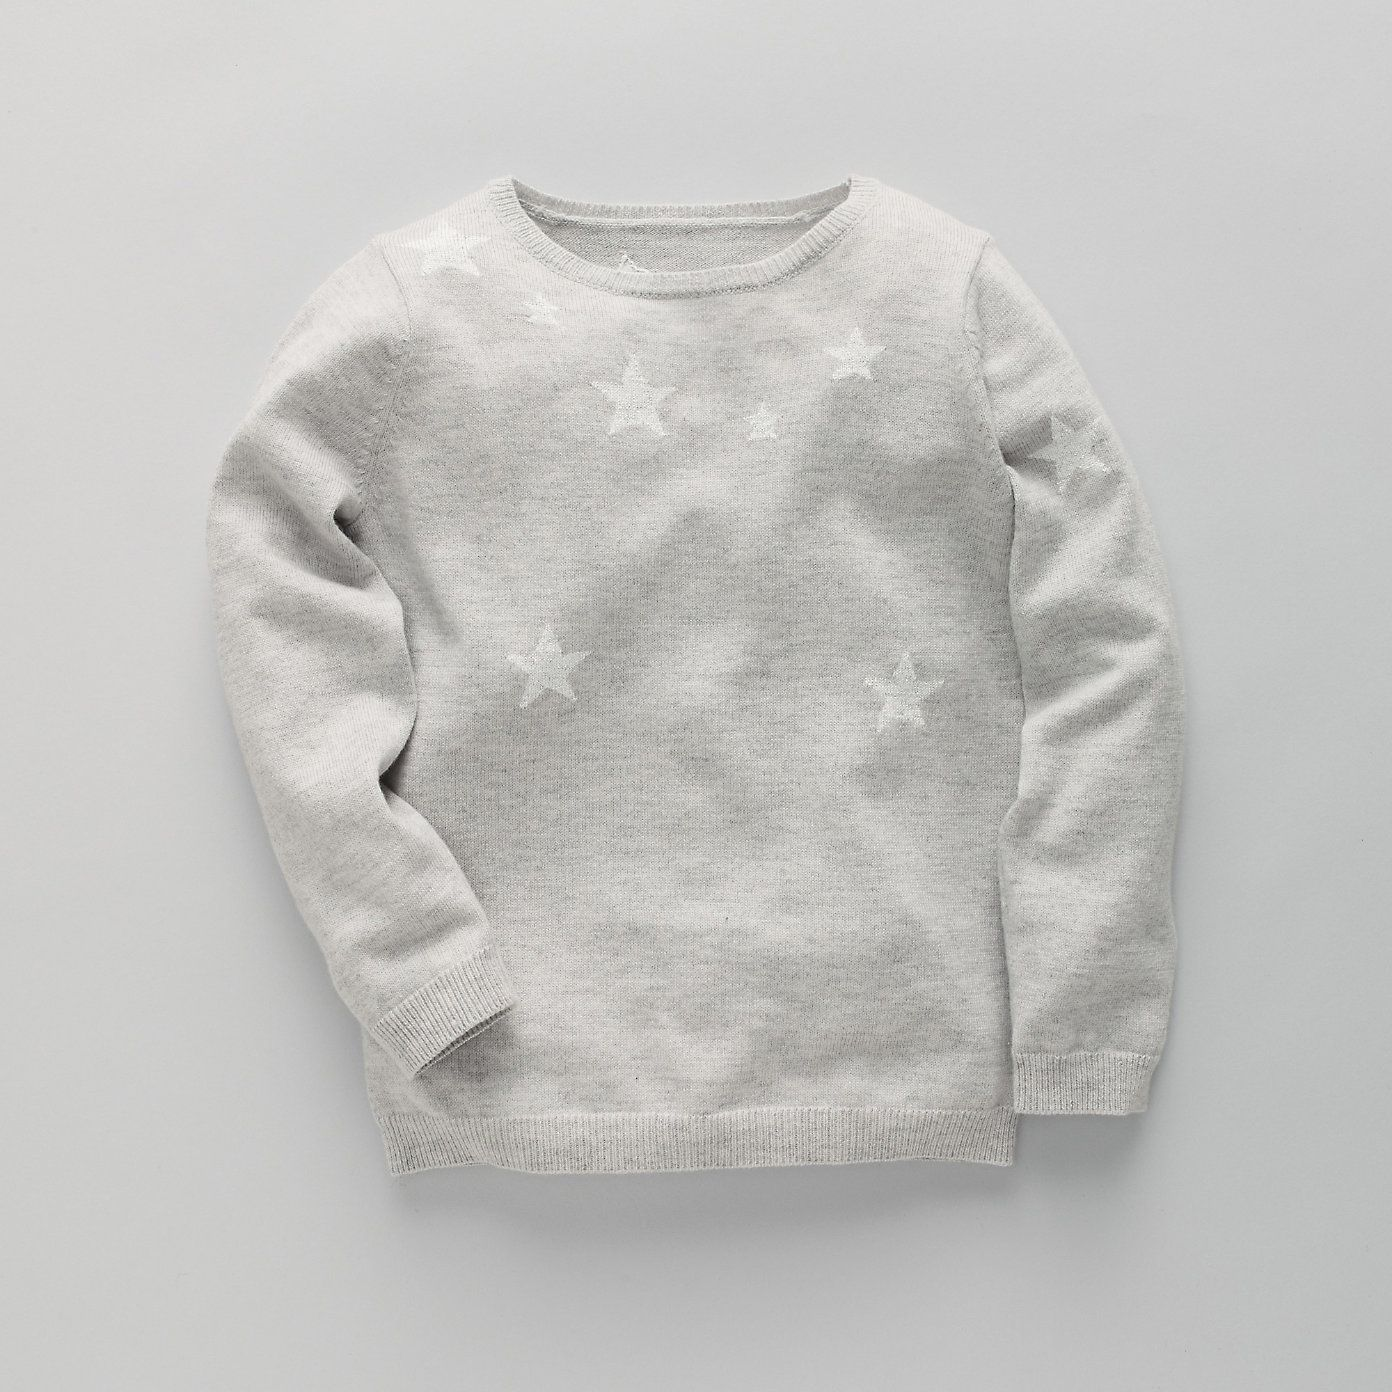 Scattered Star Girls' Sweater | The White Company | MY KID STYLE ...